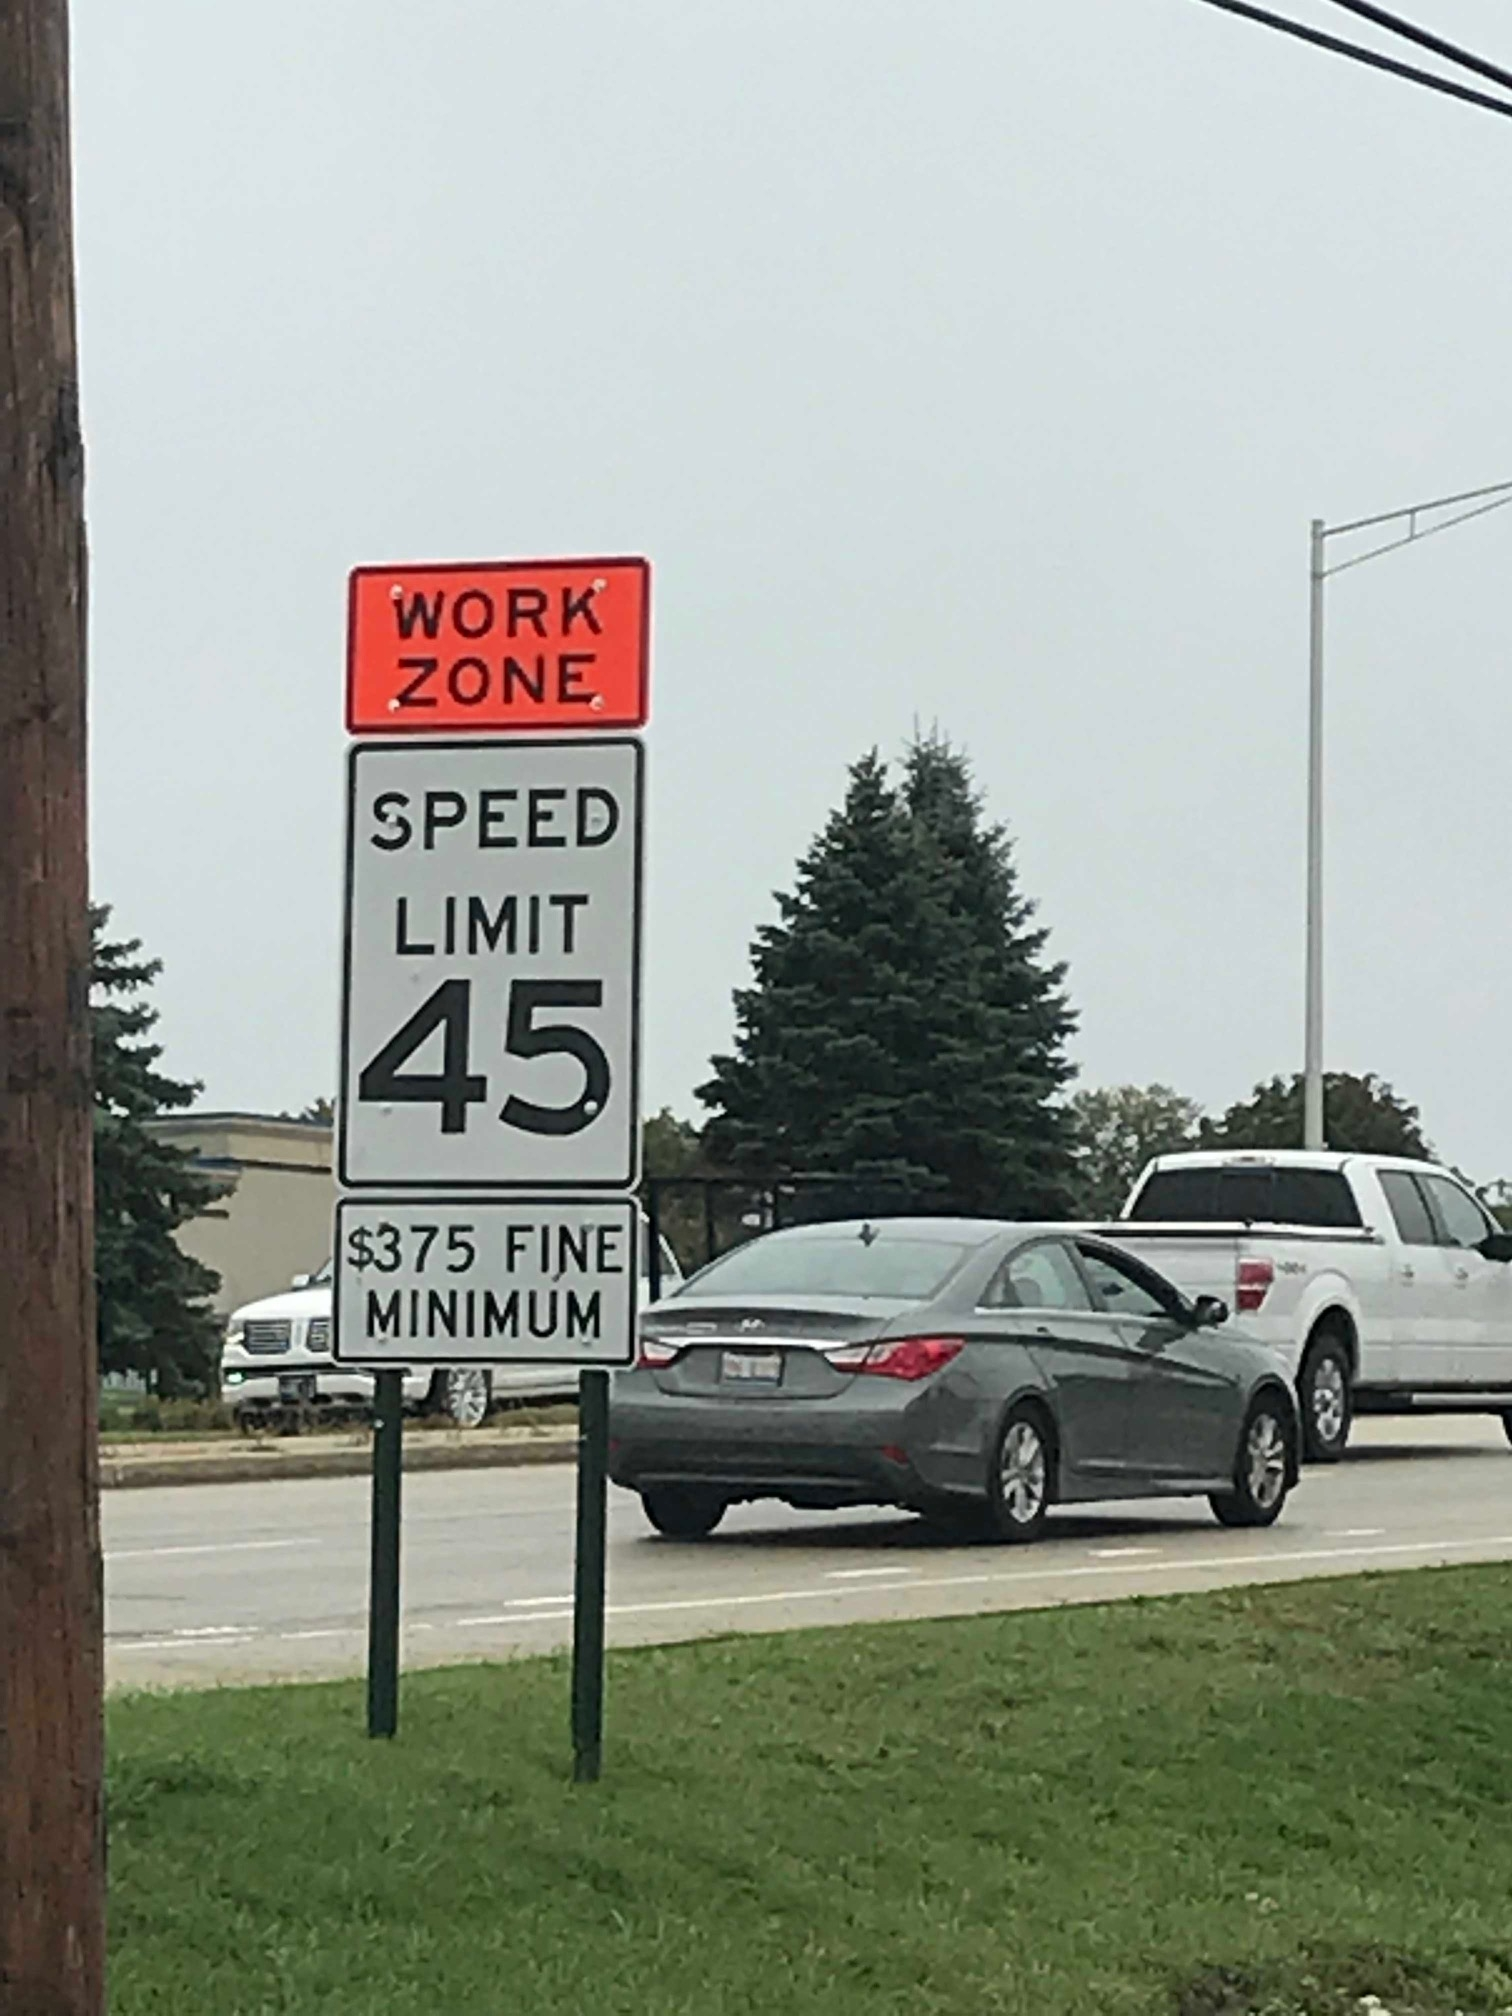 Work zone speed limit signs